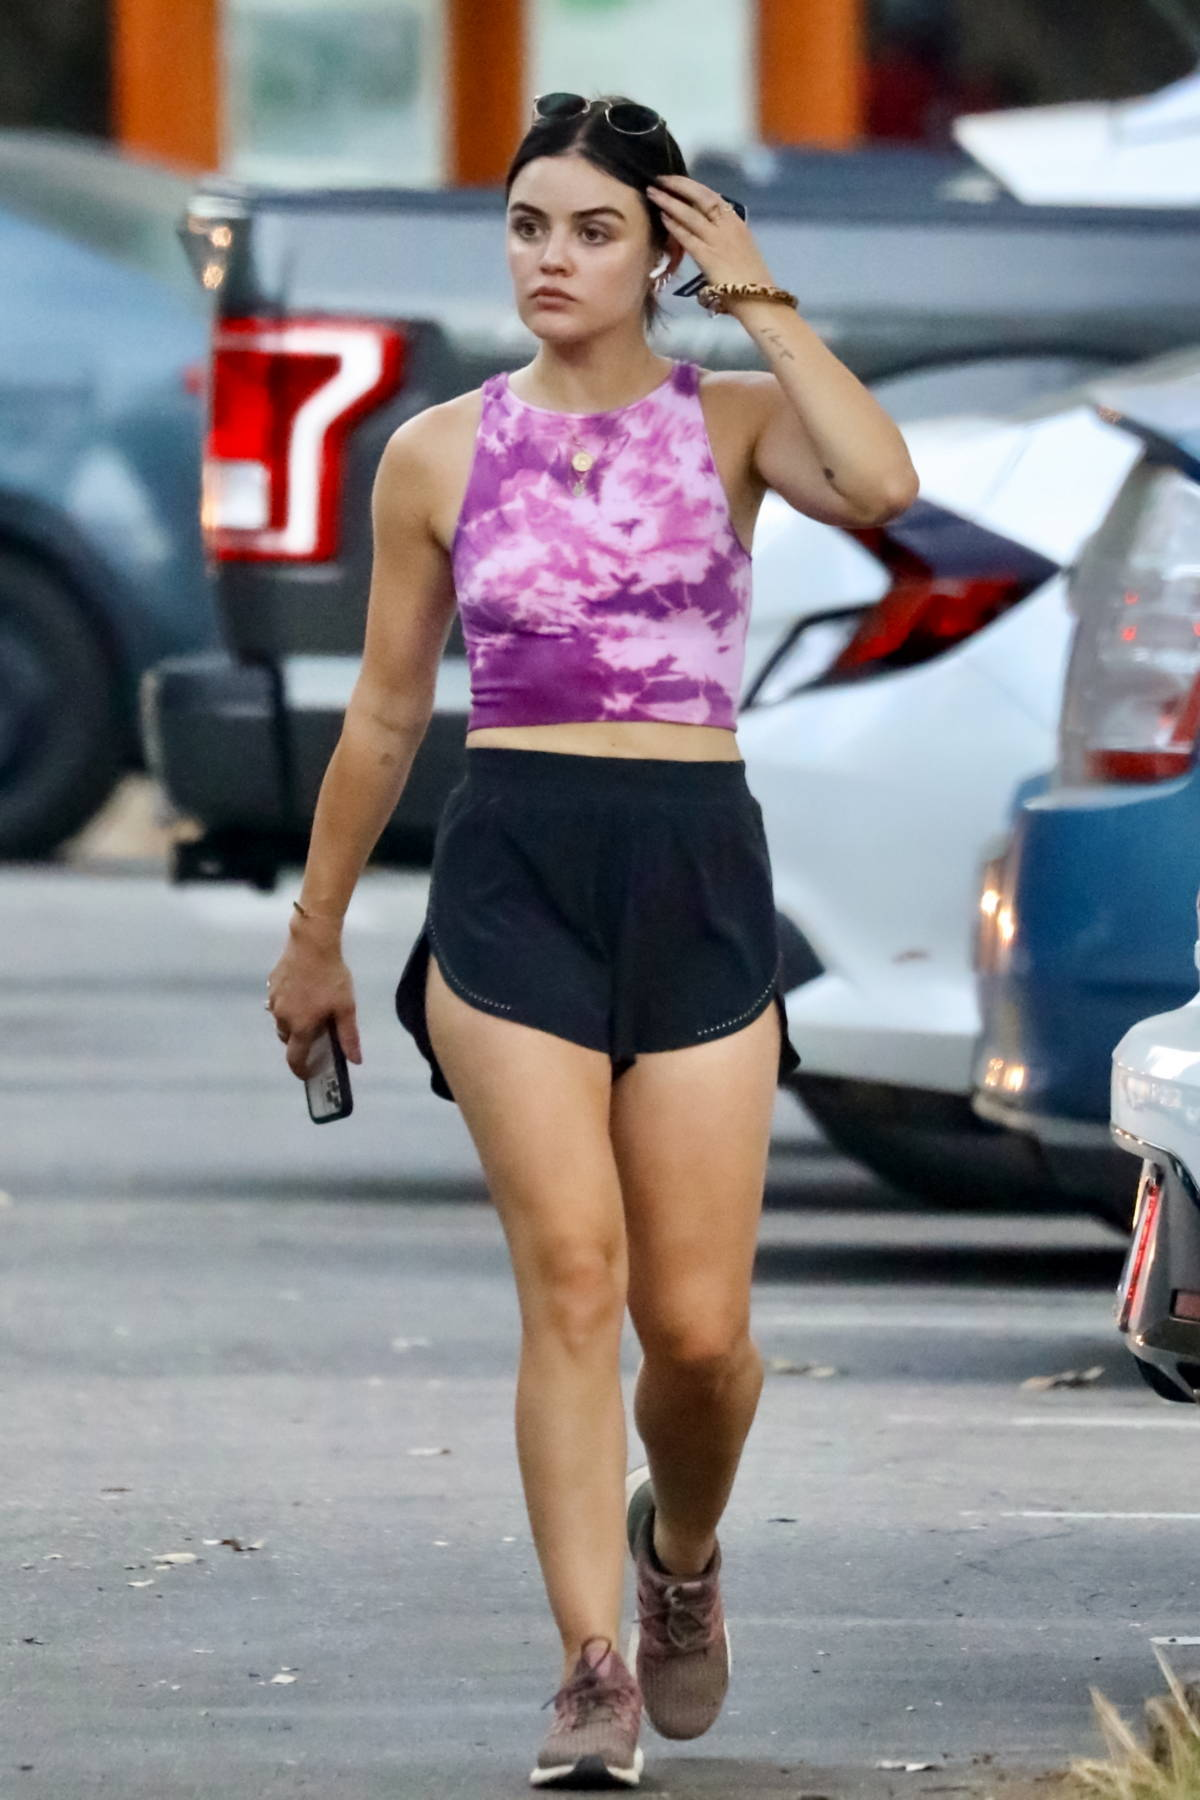 Lucy Hale wears a tie-dye crop top and black shorts while out on a solo hike in Studio City, California